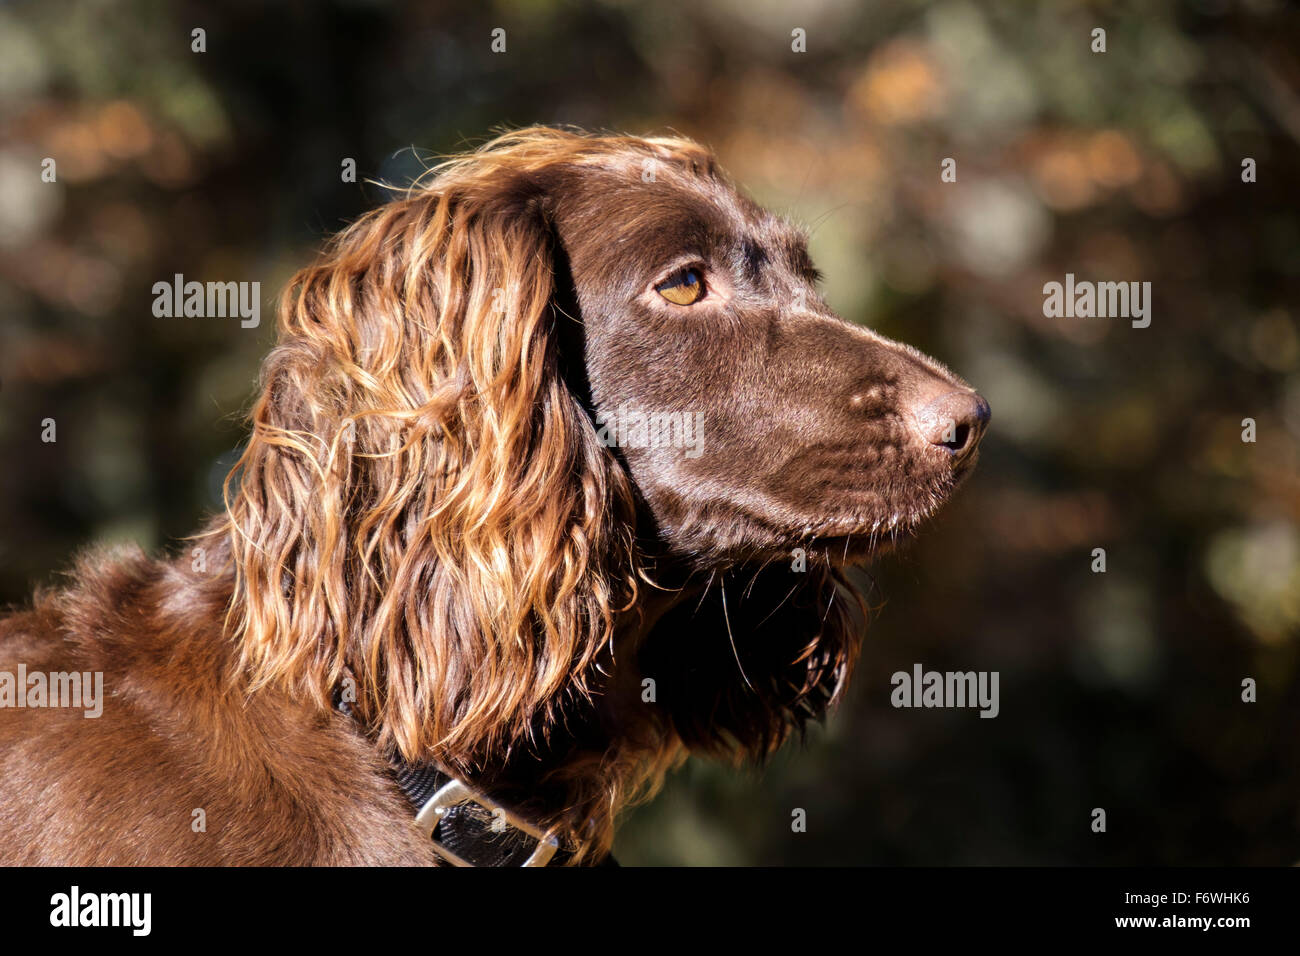 Chocolate brown (liver) English Cocker Spaniel pet dog head portrait side view outdoors in woodland. UK Britain - Stock Image